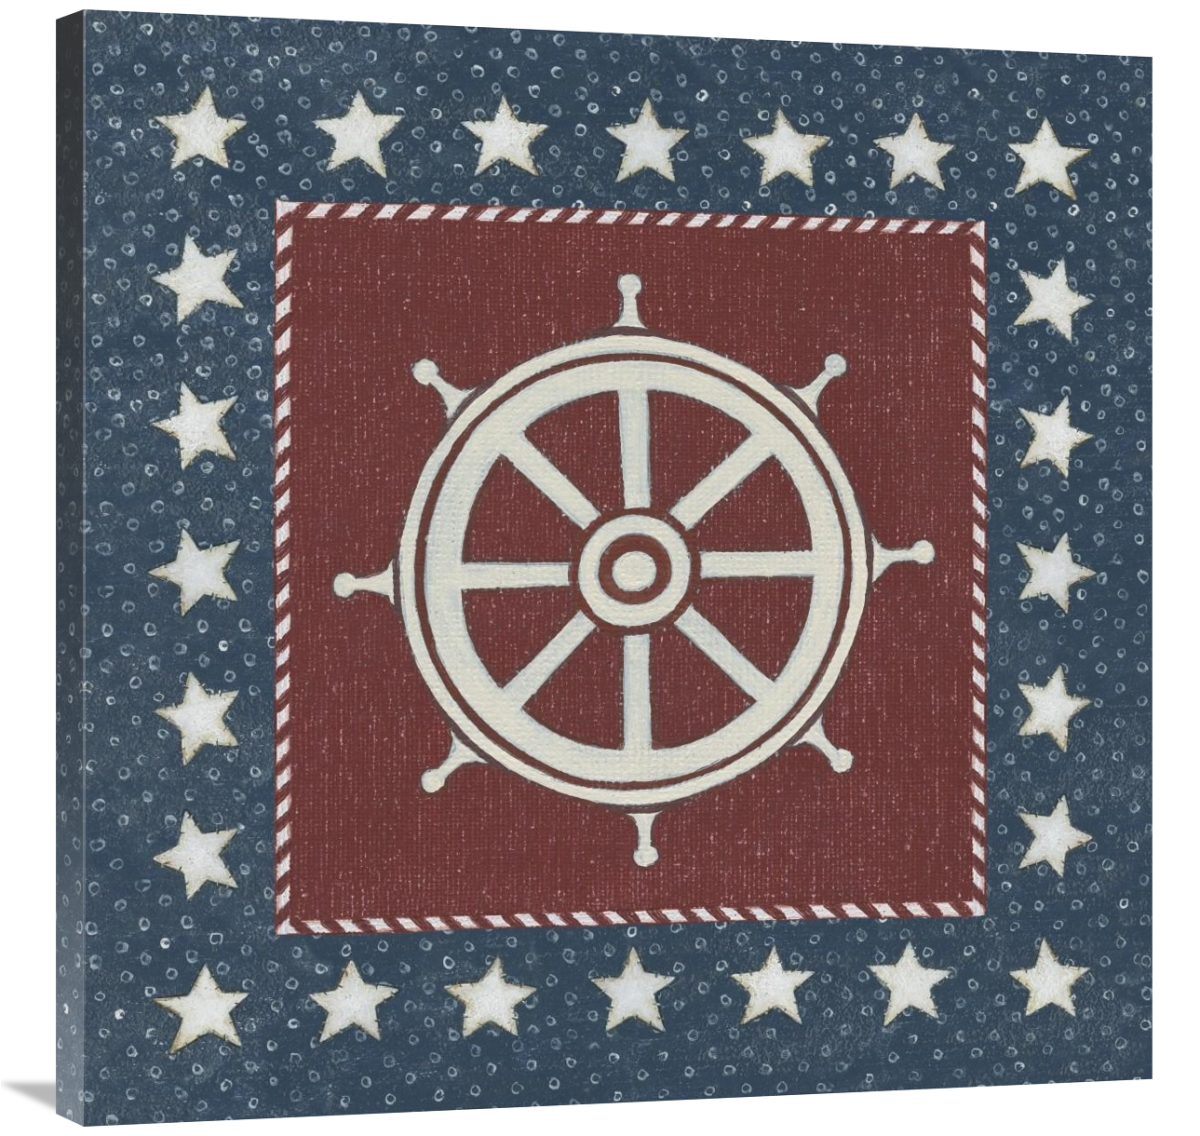 Global Gallery's 'Coastal Americana IV' by David Carter Brown Stretched Canvas Wall Art